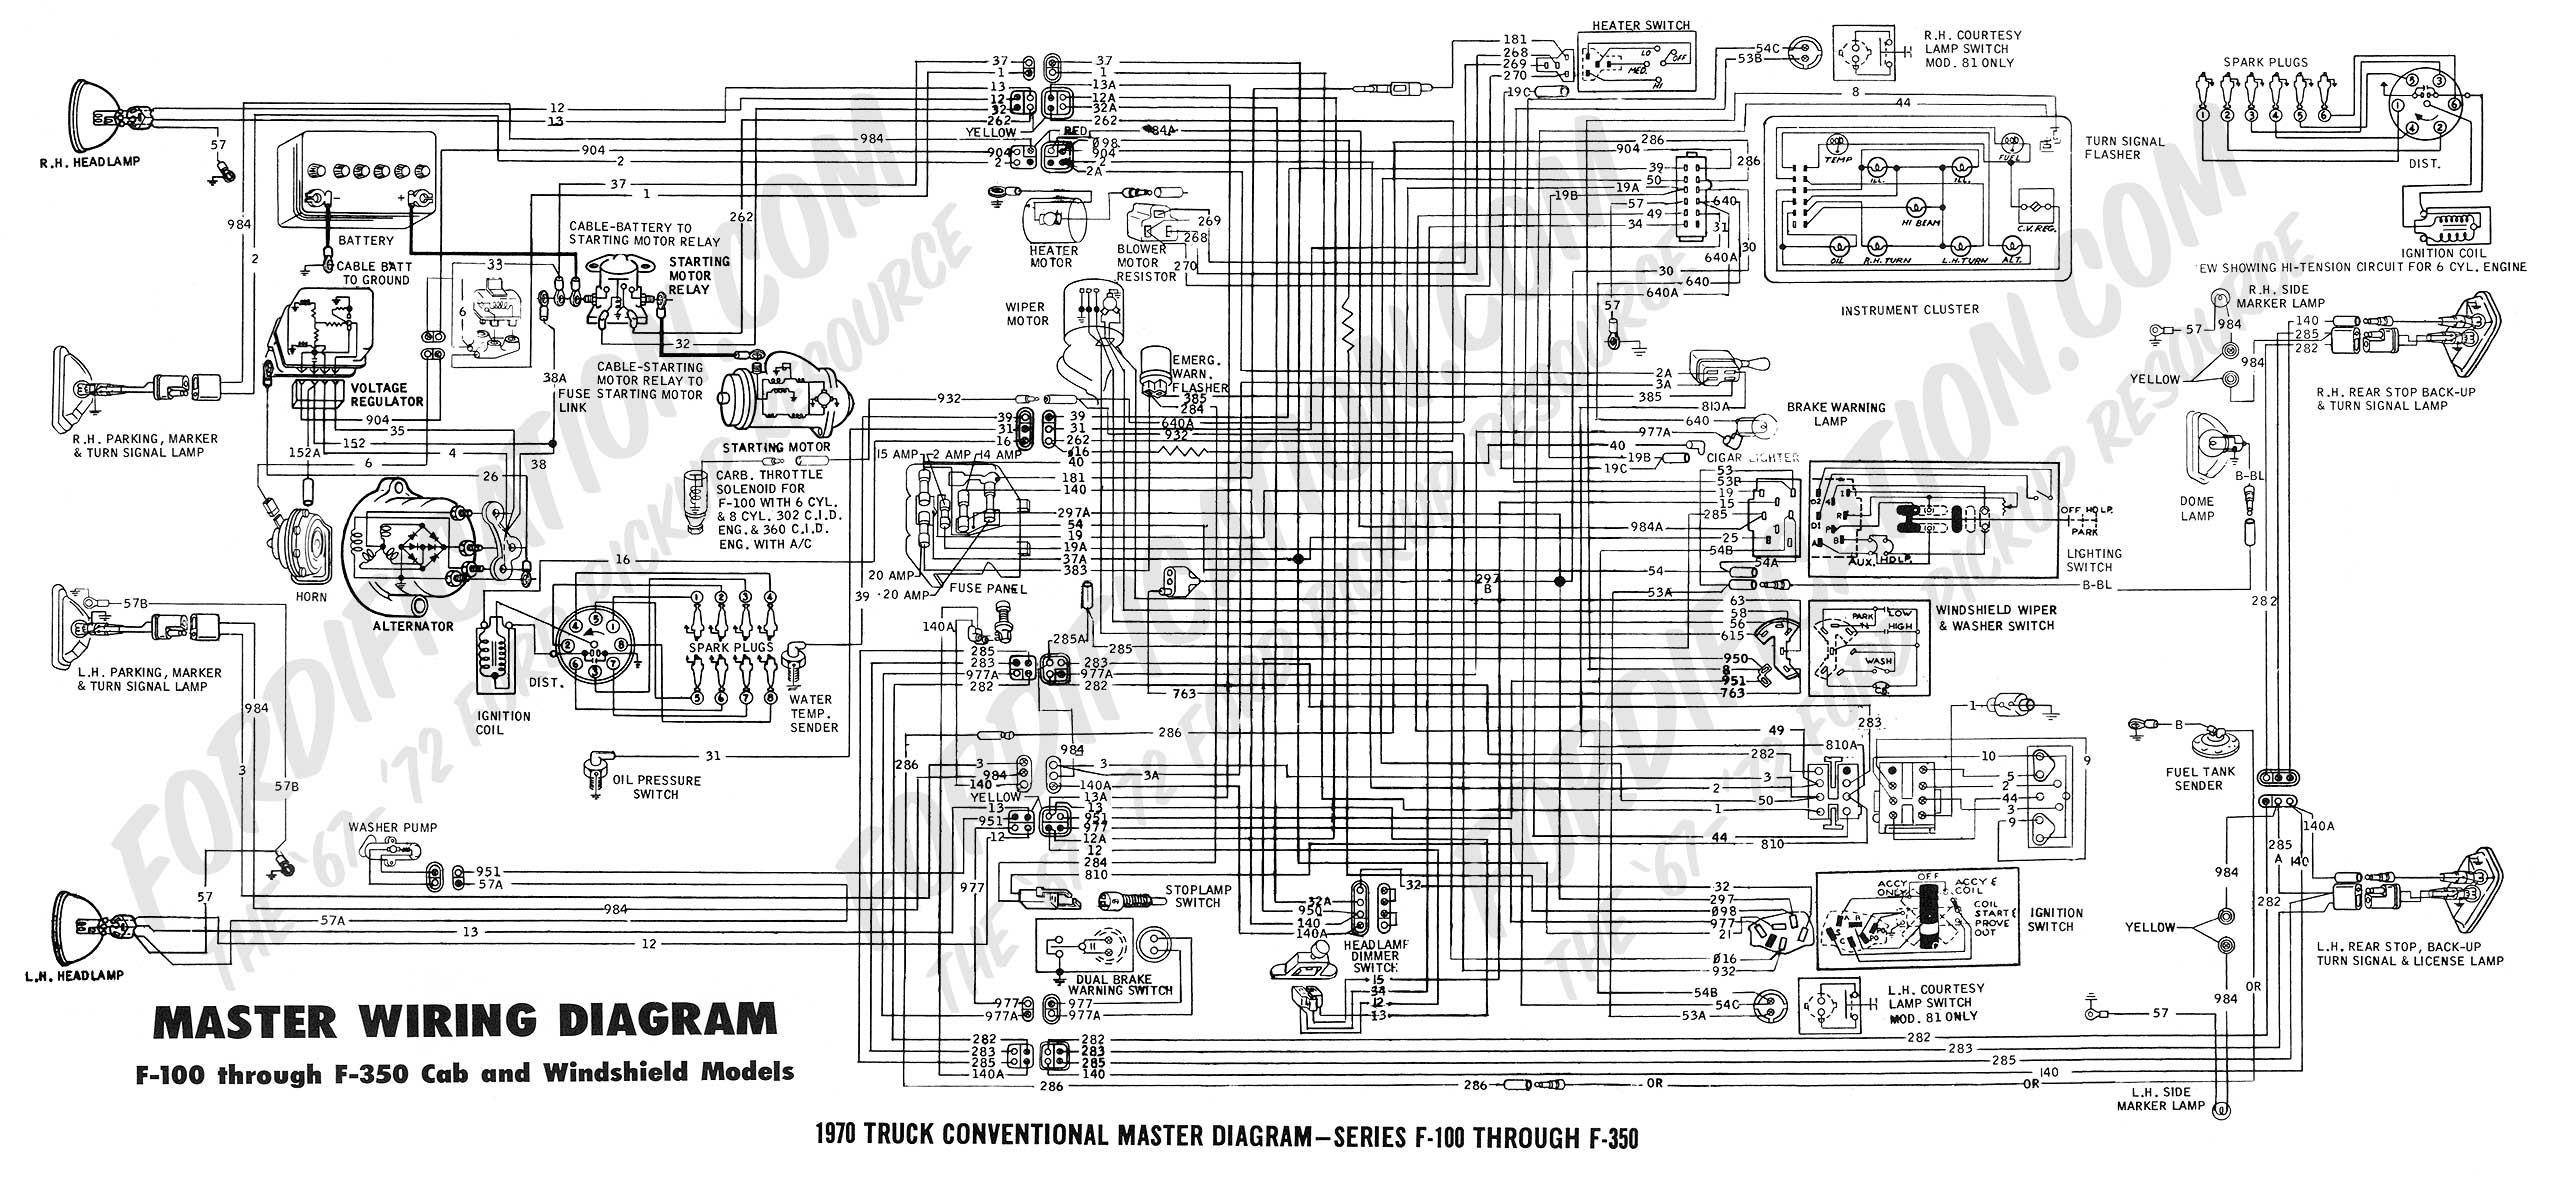 1970 F100 Wiring Diagram - Wiring Diagram